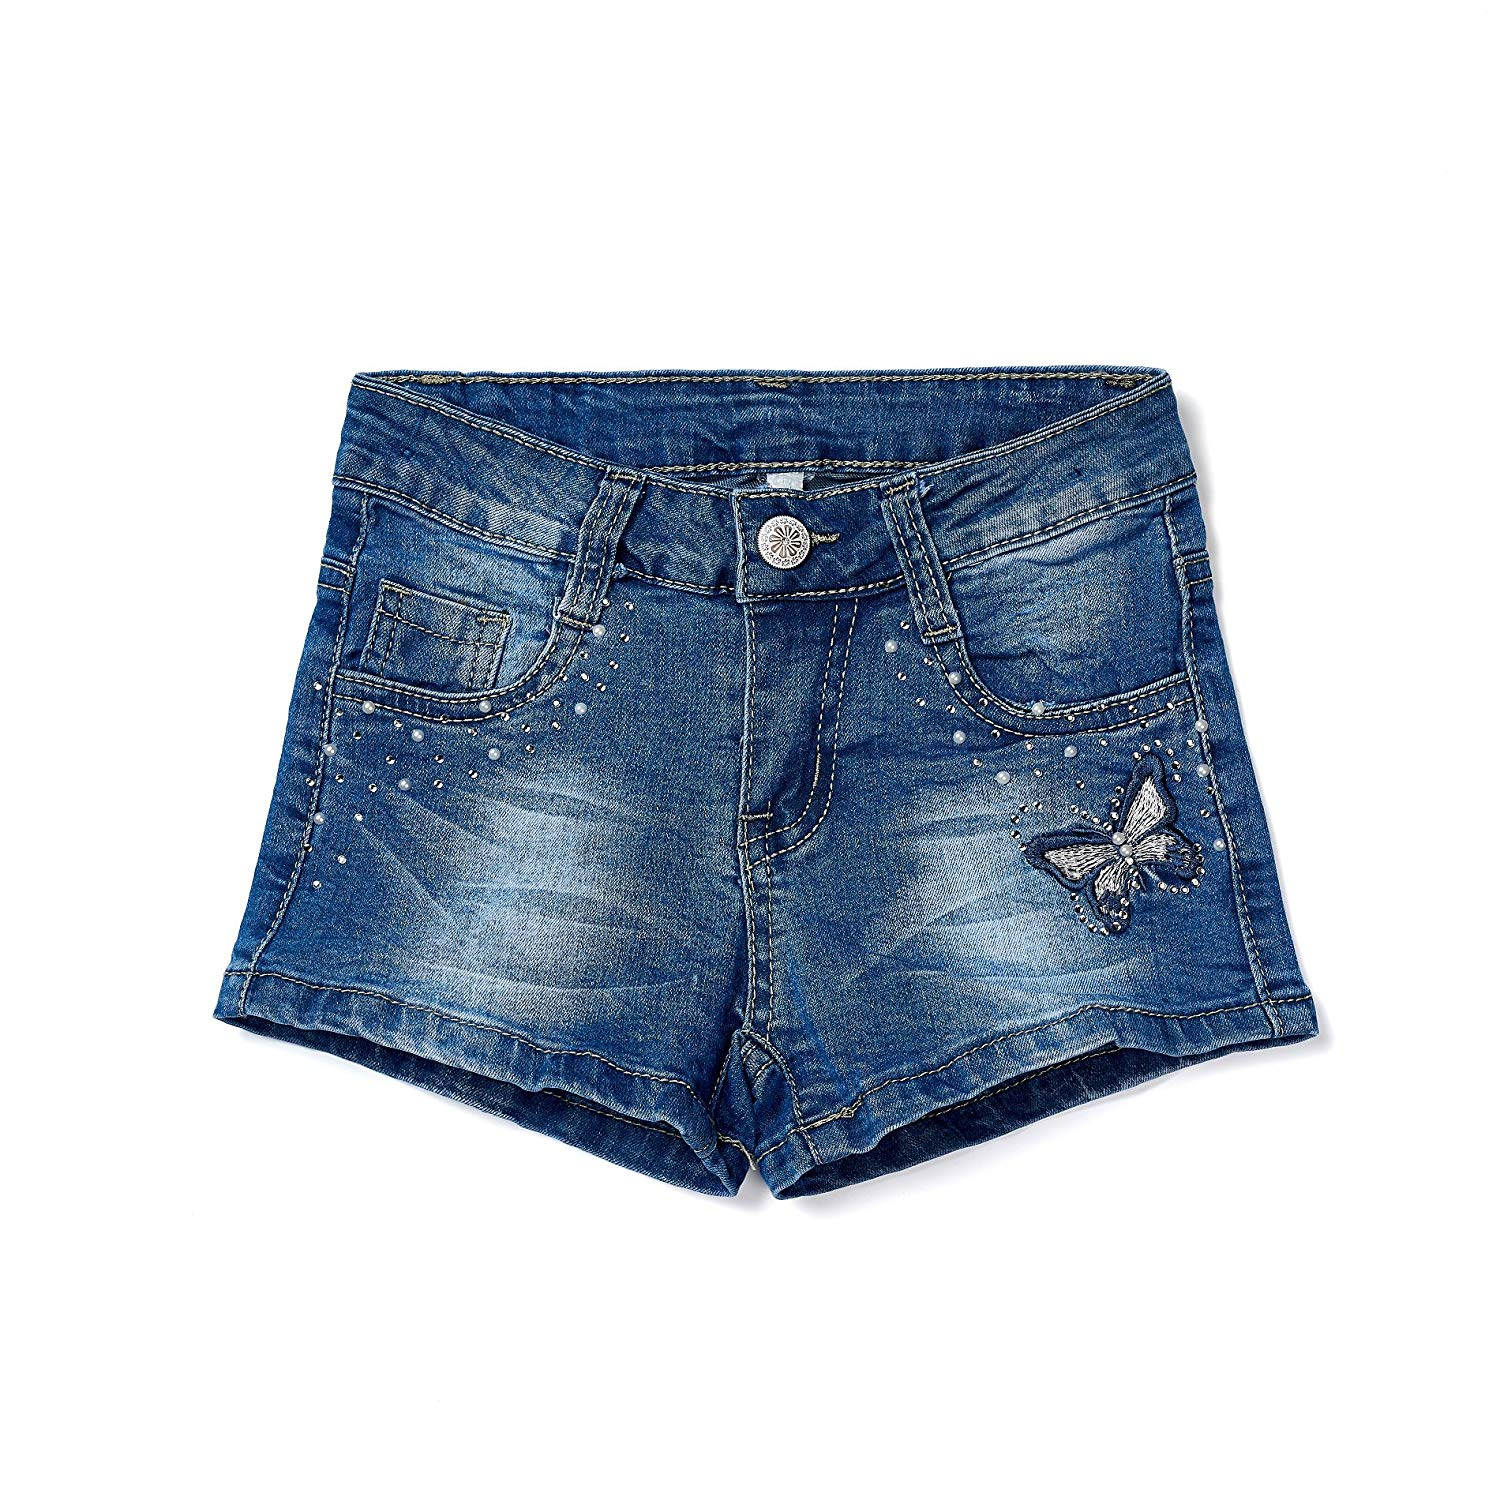 051e3752de Get Quotations · ISPED Girls Jean Shorts for Teen Girls Ripped Girls Shorts  Summer Floral Embroided Denim Jean Shorts